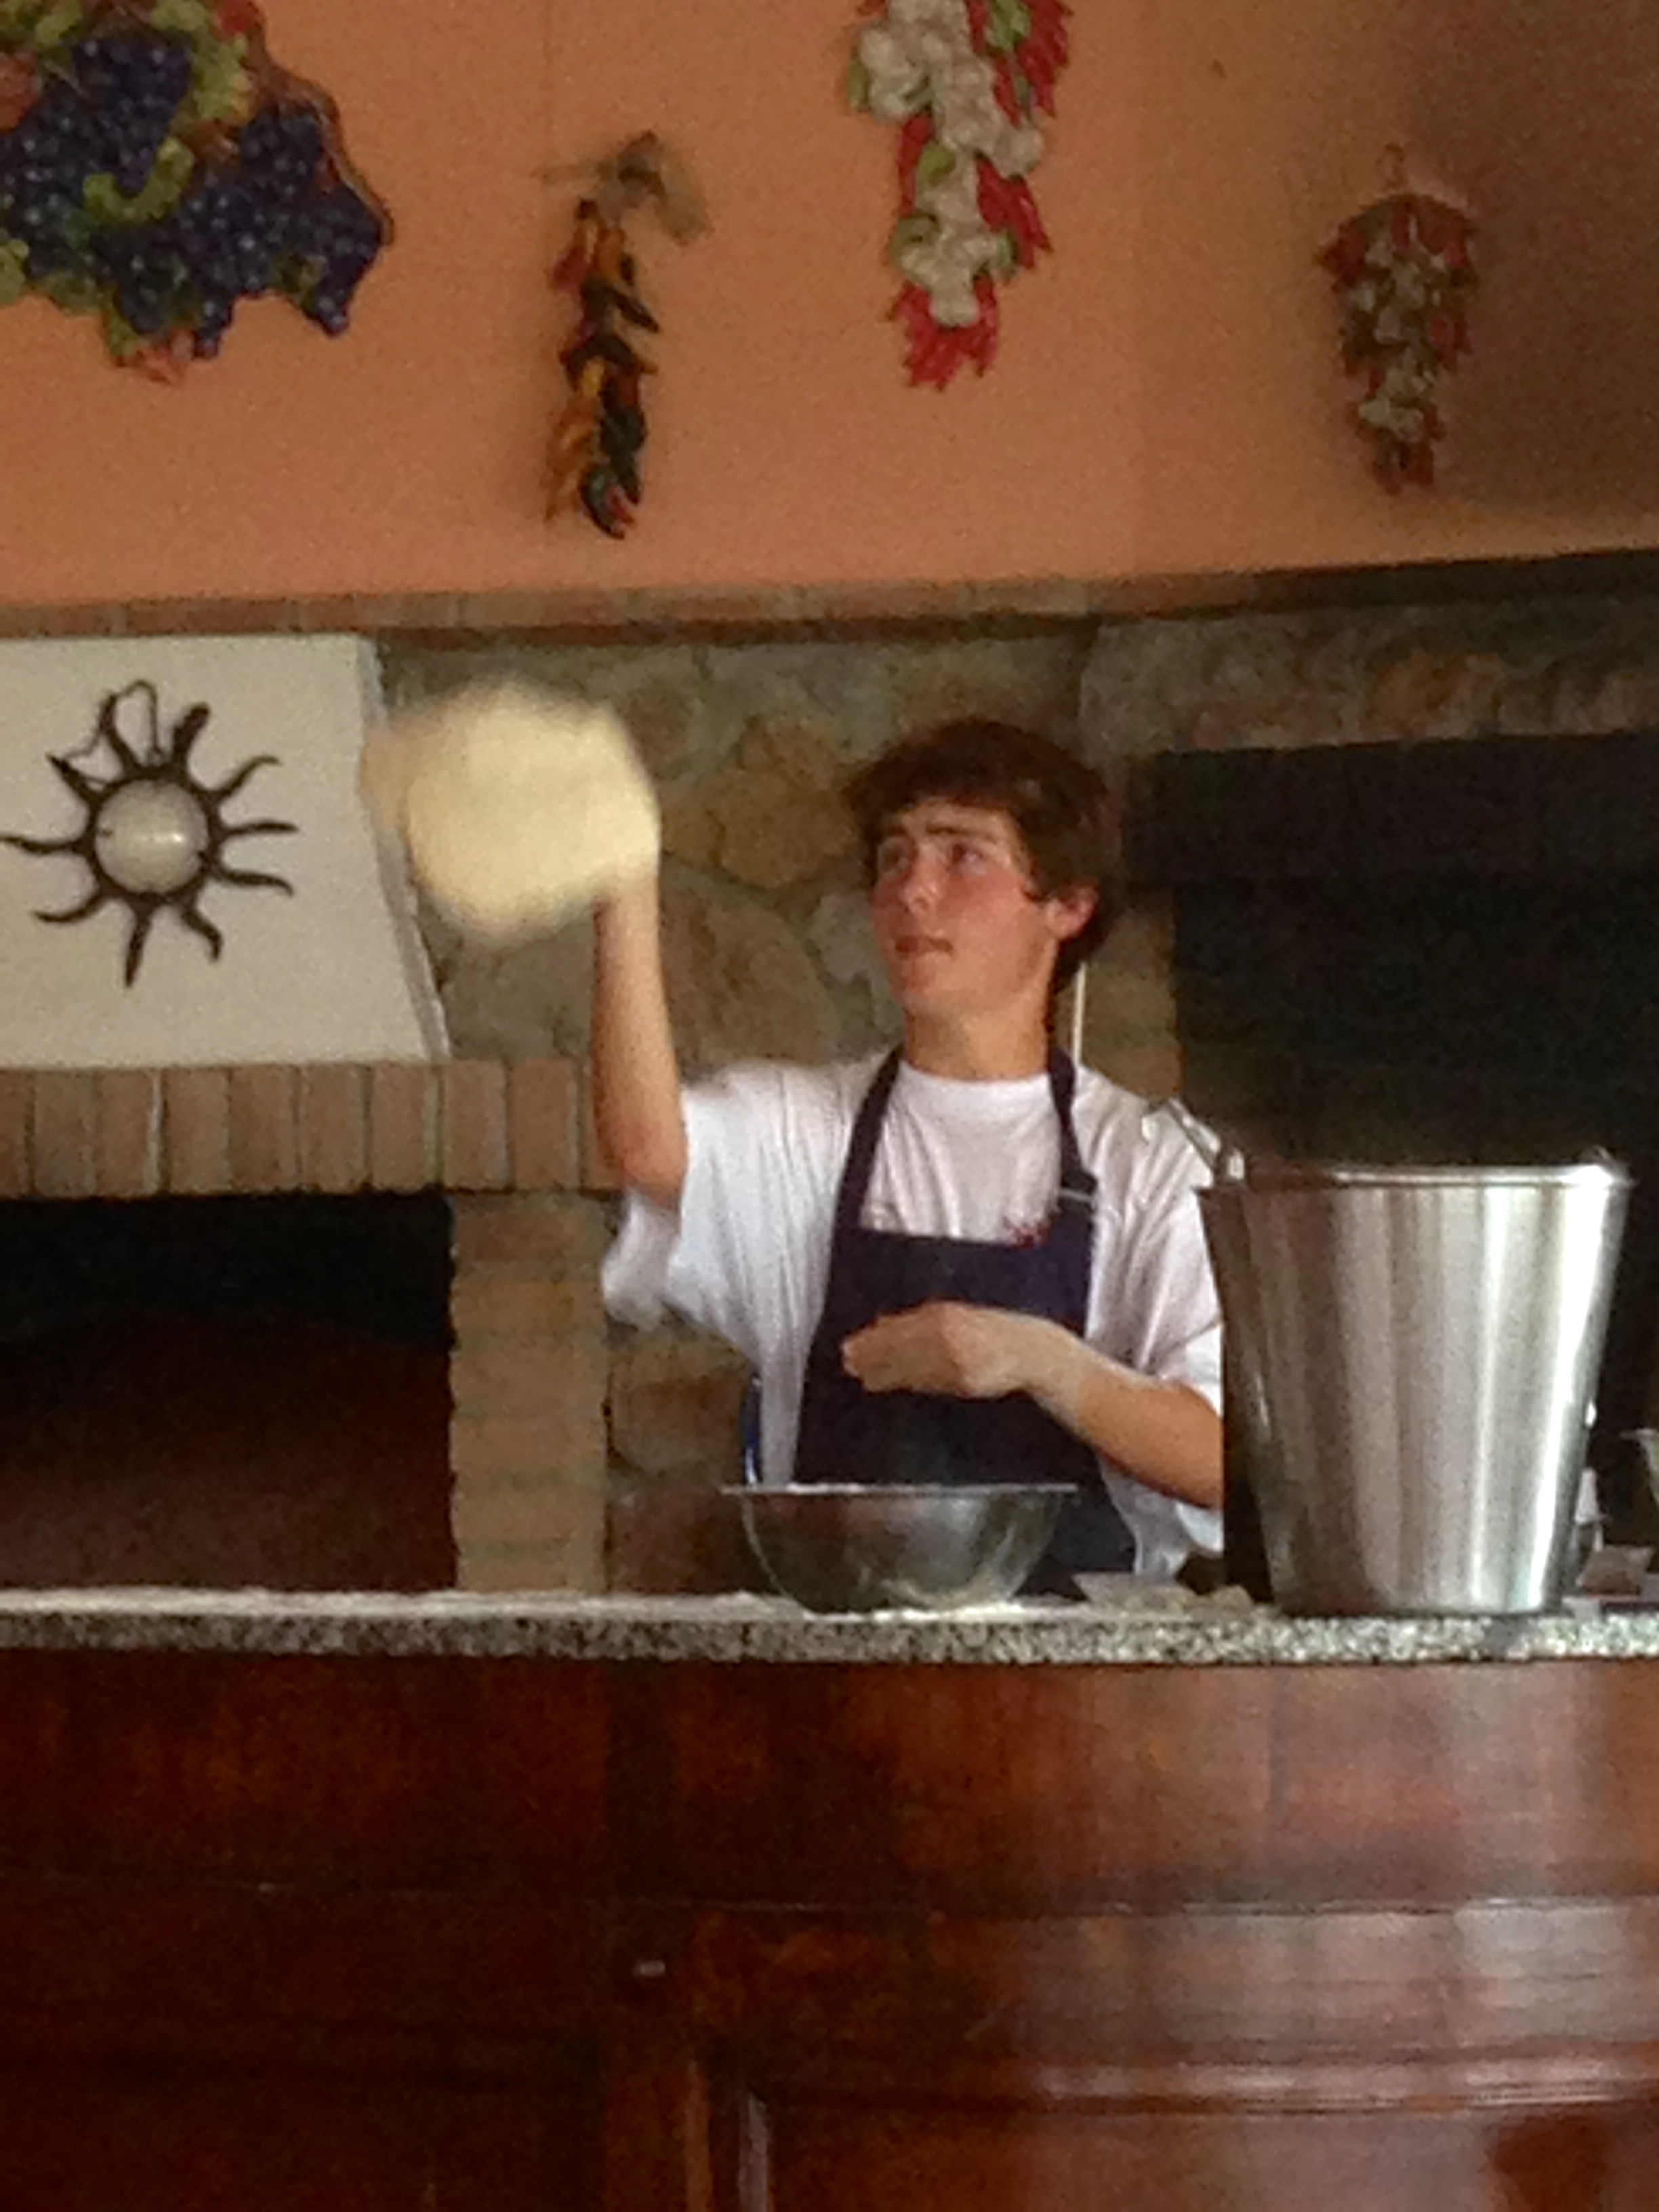 I confidently toss the dough in the air like a true pizzaiolo.